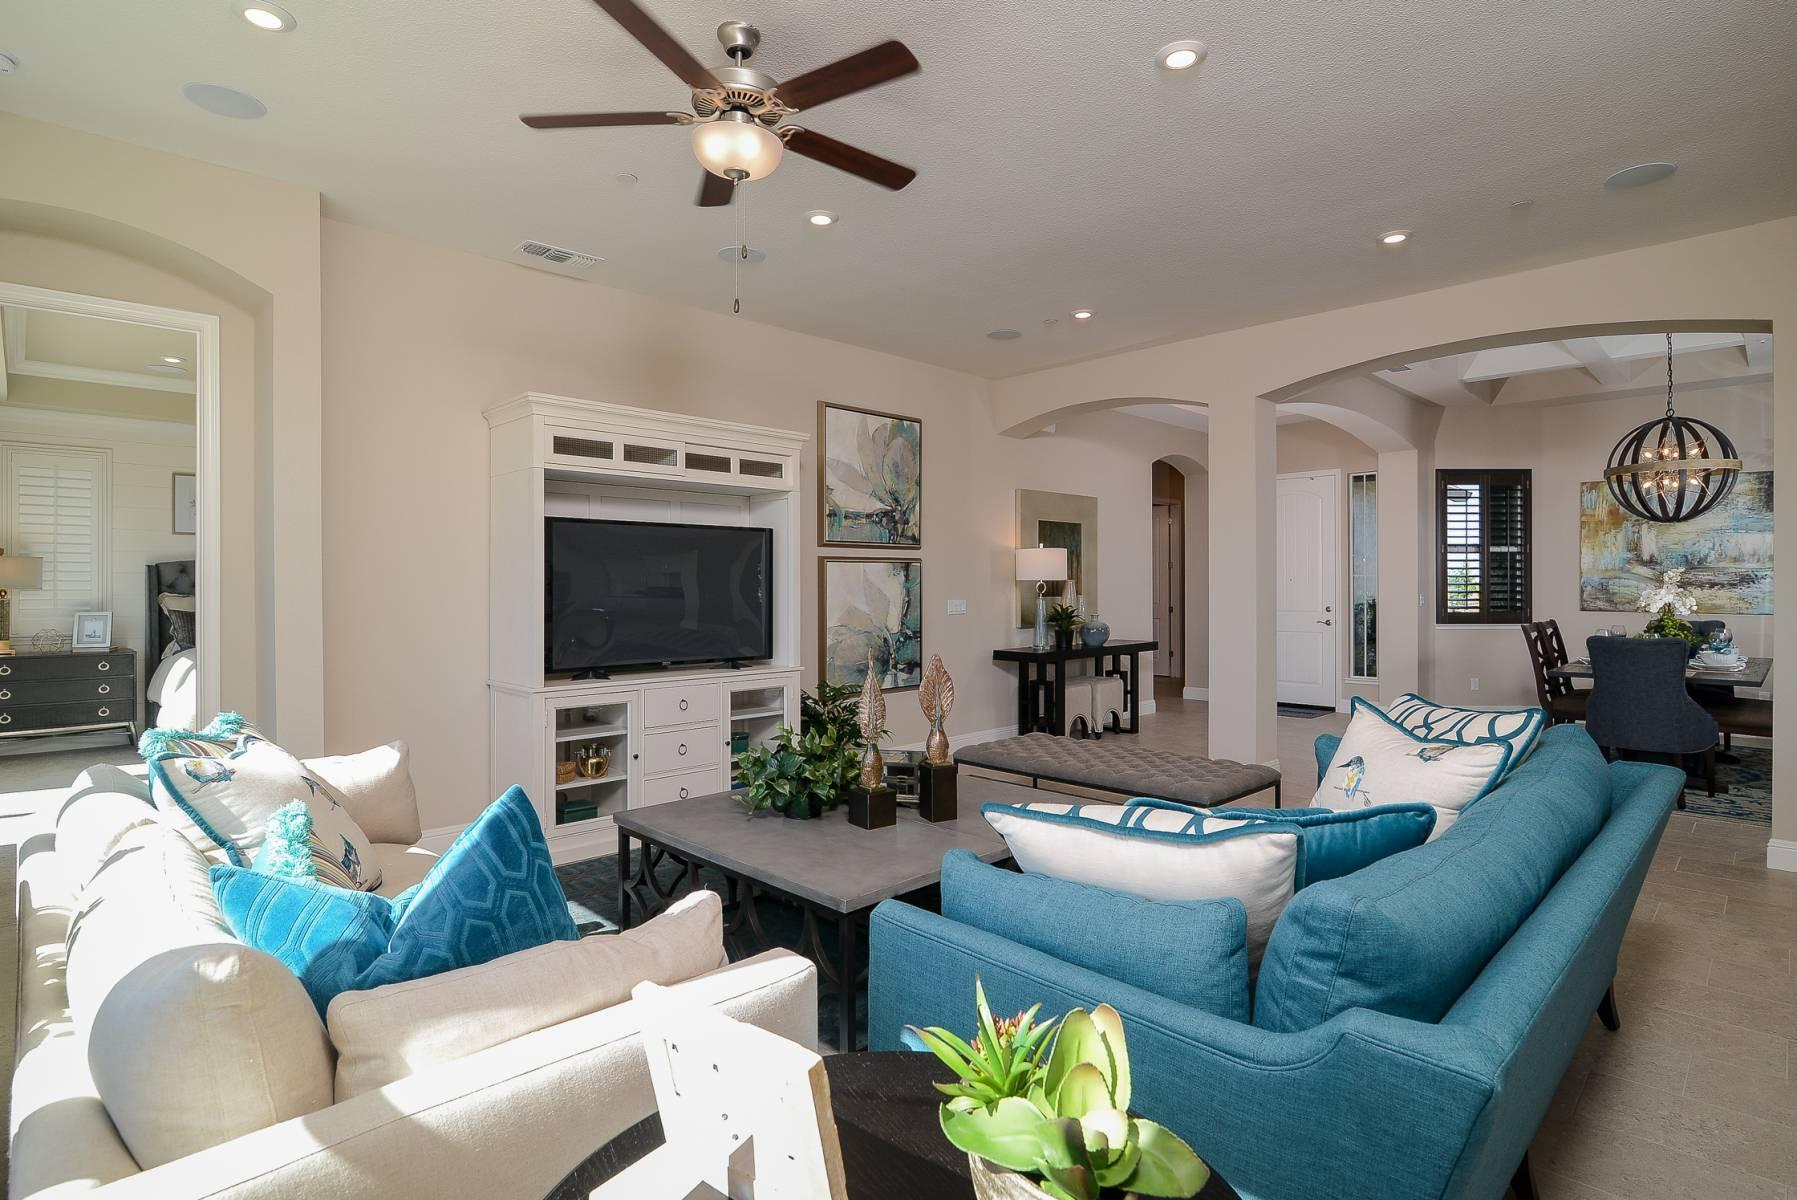 Living Area featured in the Zinfandel By Elliott Homes in Stockton-Lodi, CA